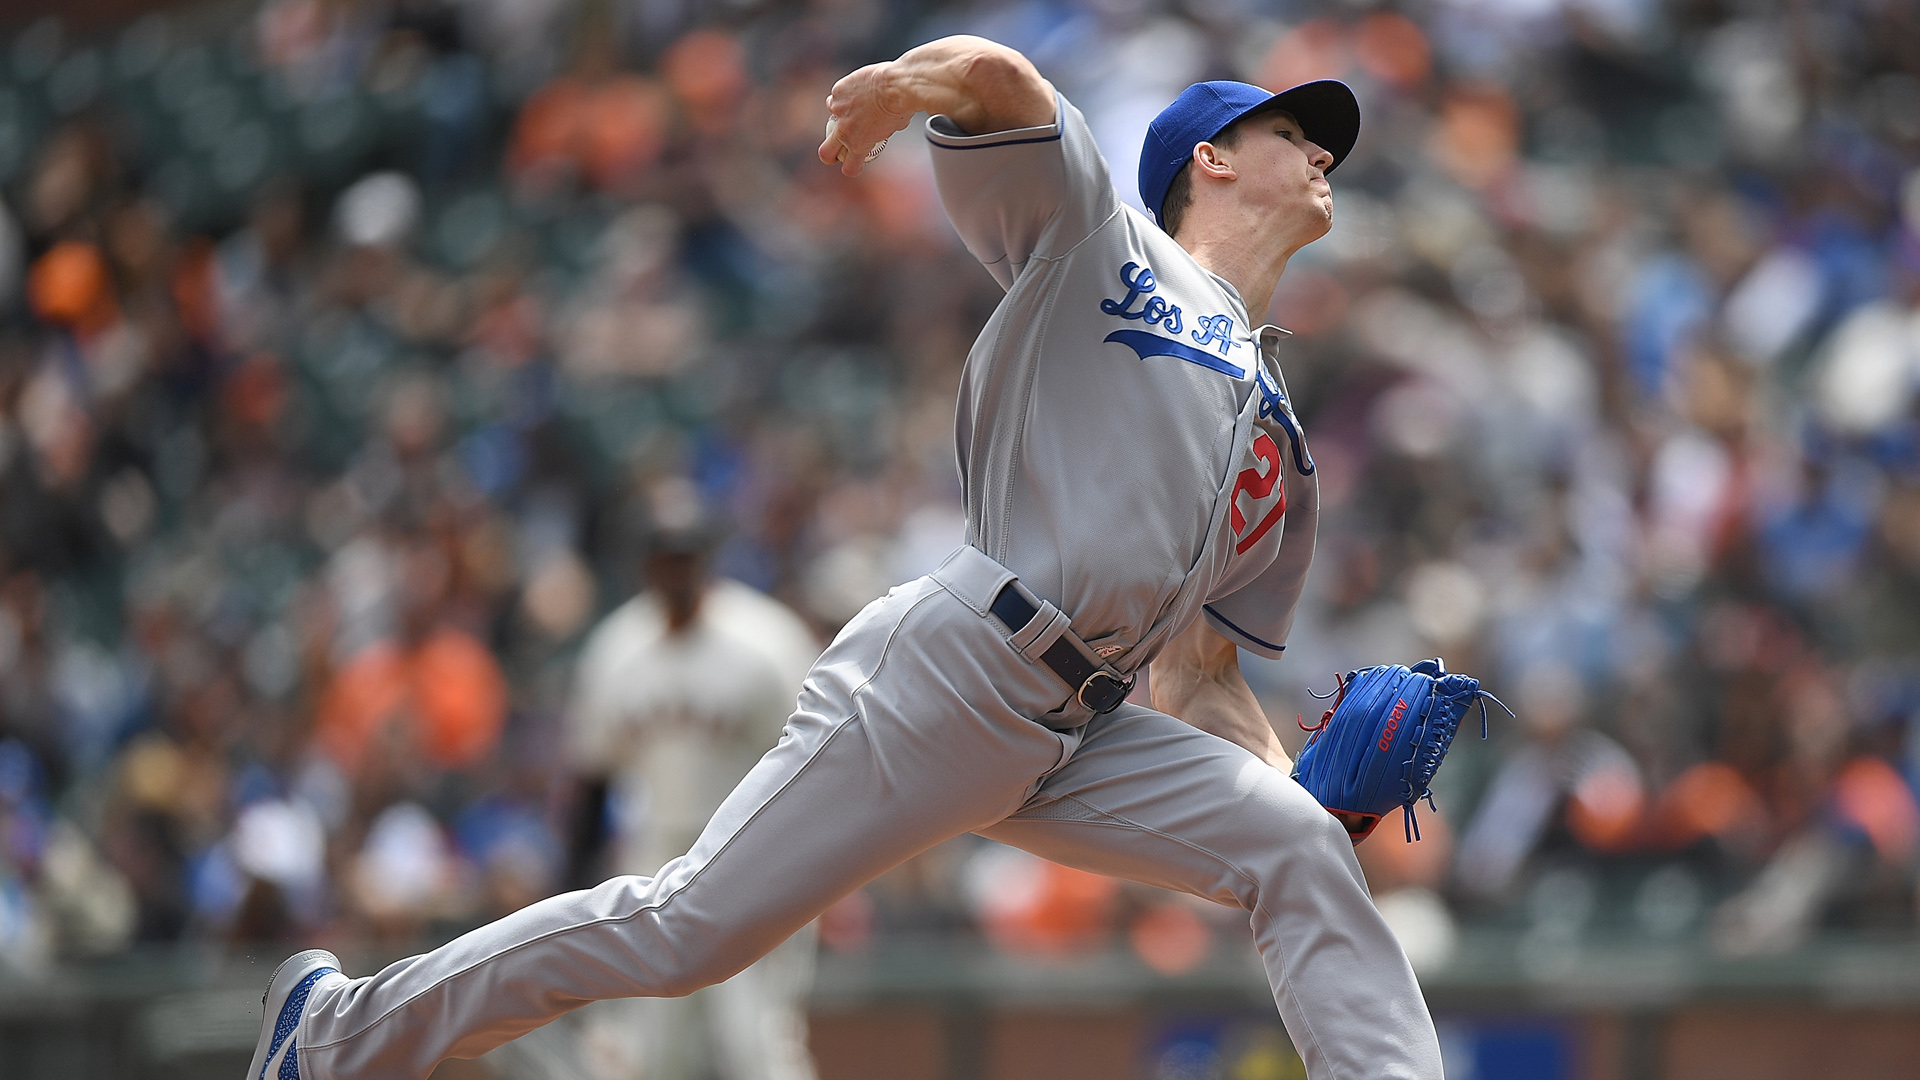 Rookie Walker Buehler spearheads first combined no-hitter in Dodgers' history